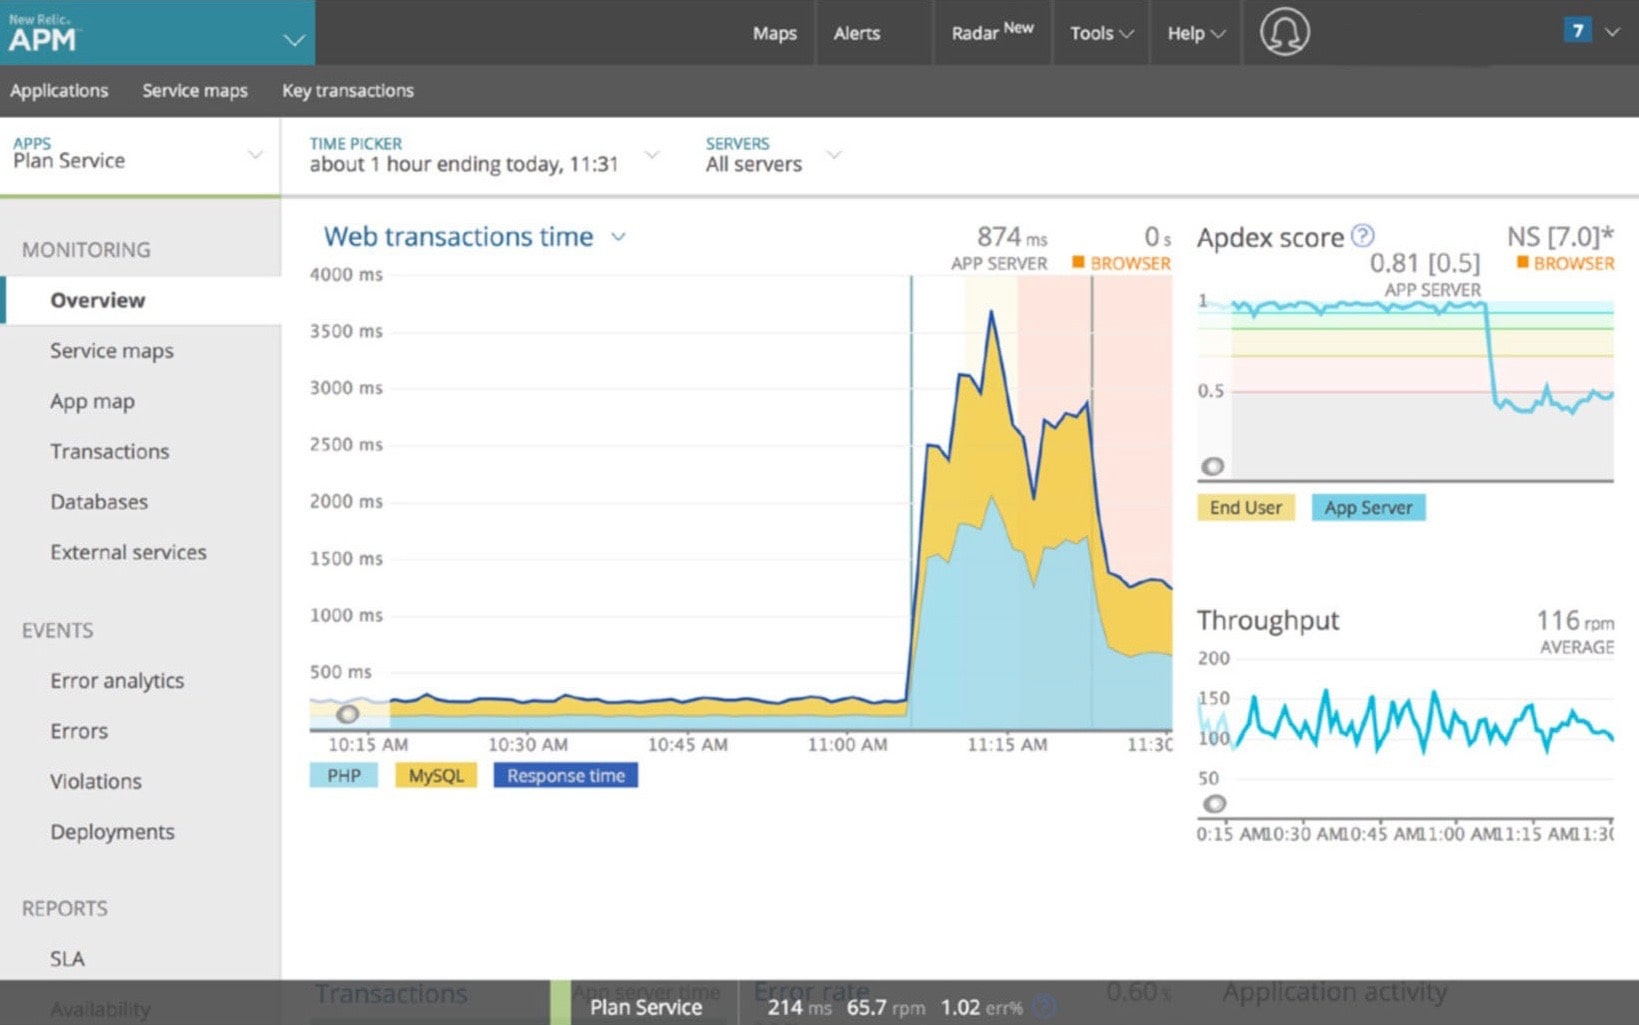 Get fast feedback on performance from the New Relic APM Overview page.